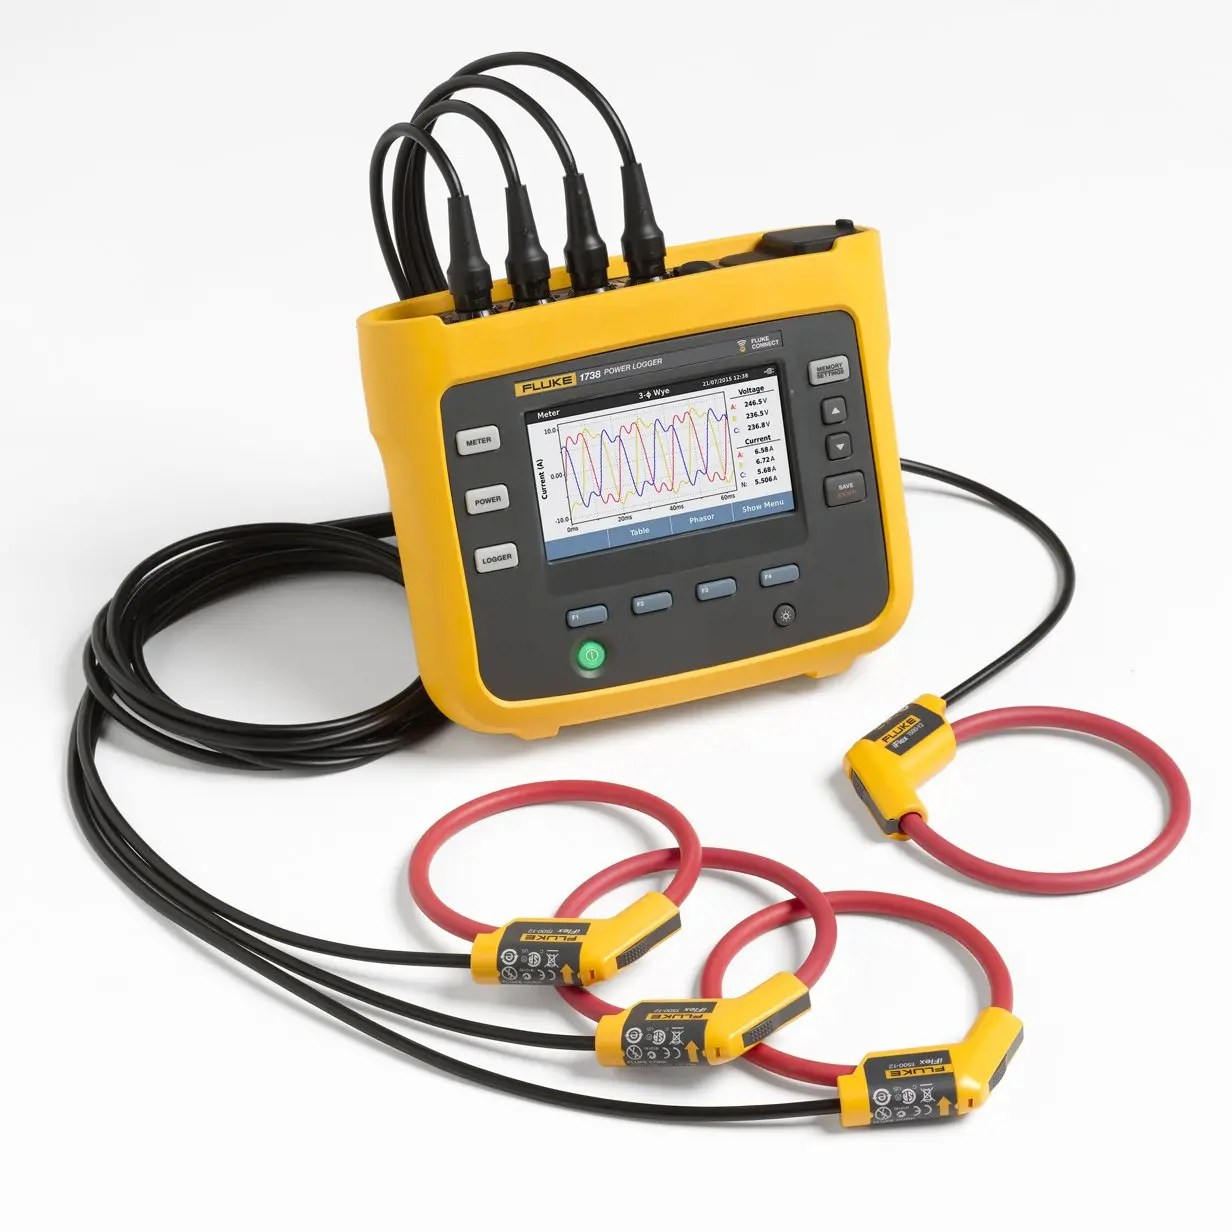 hight resolution of fluke 1738 three phase power logger